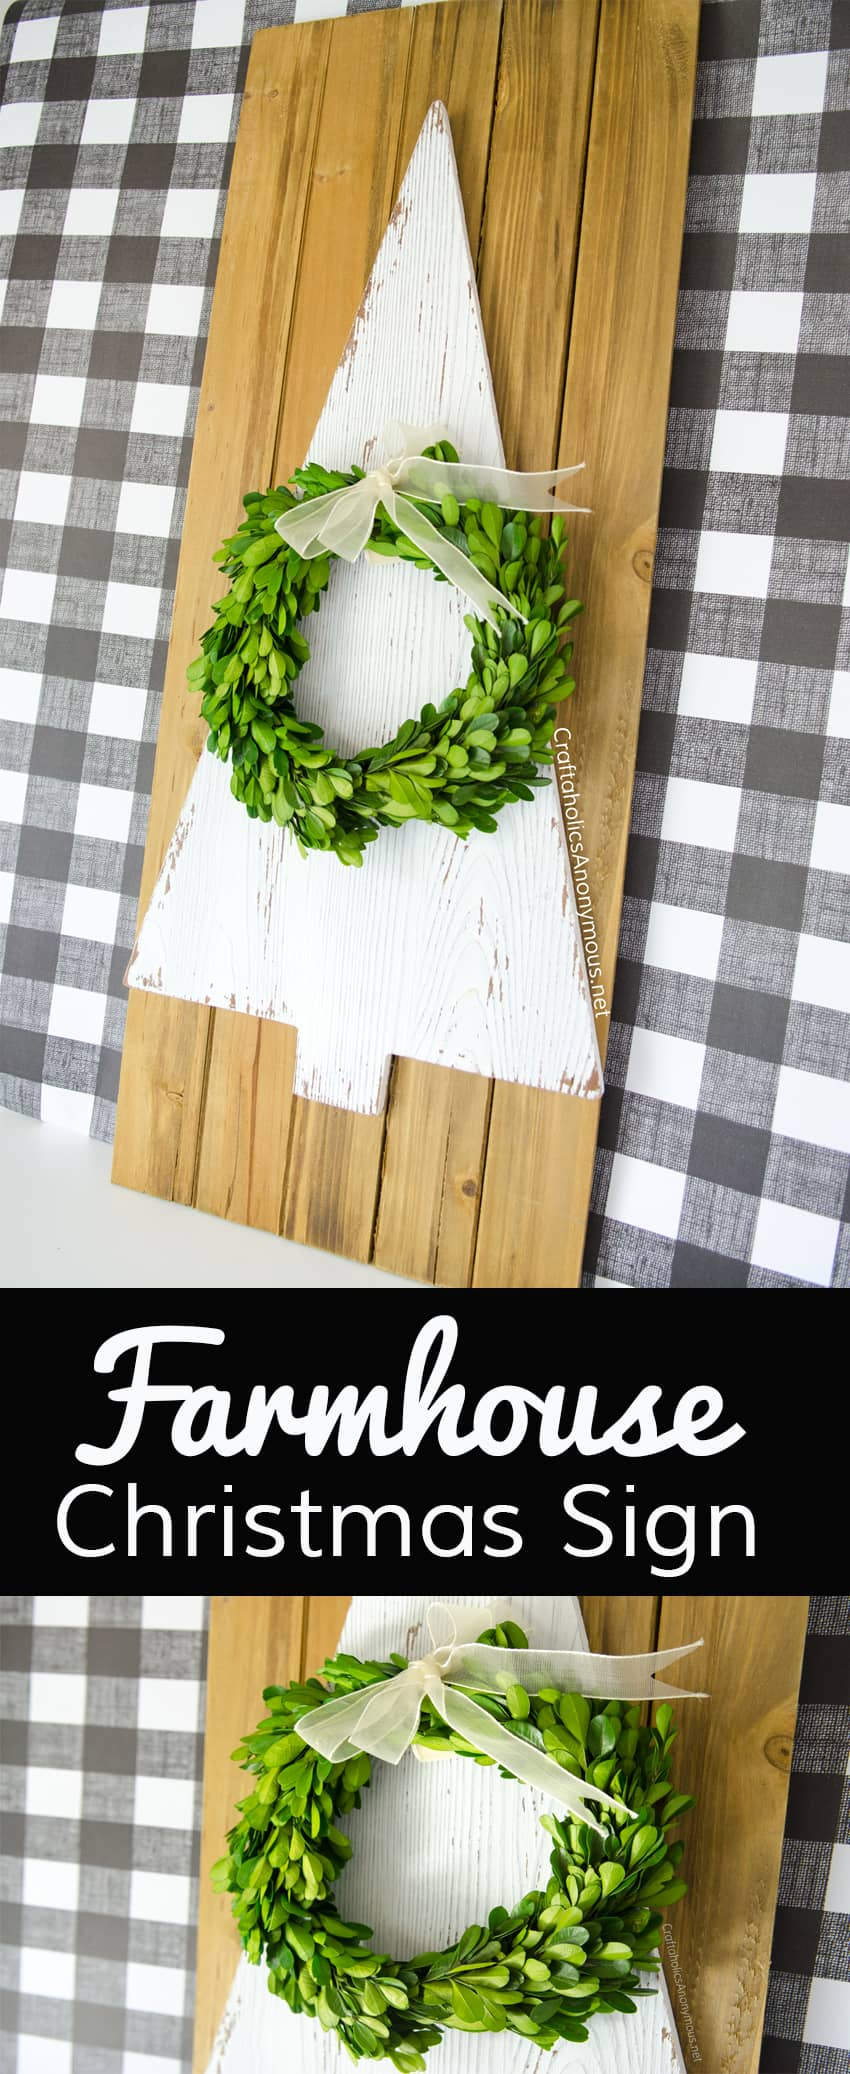 Farmhouse Christmas sign with a tree and a wreath on it